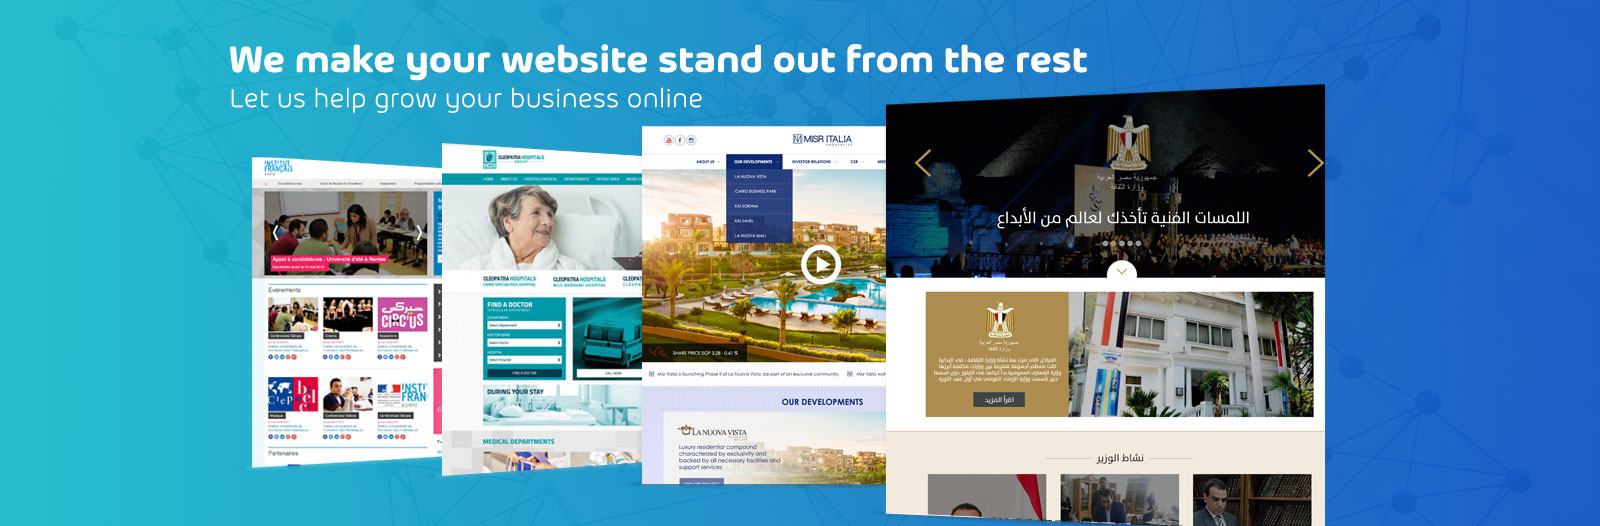 NetWave | Web design and development - Egypt